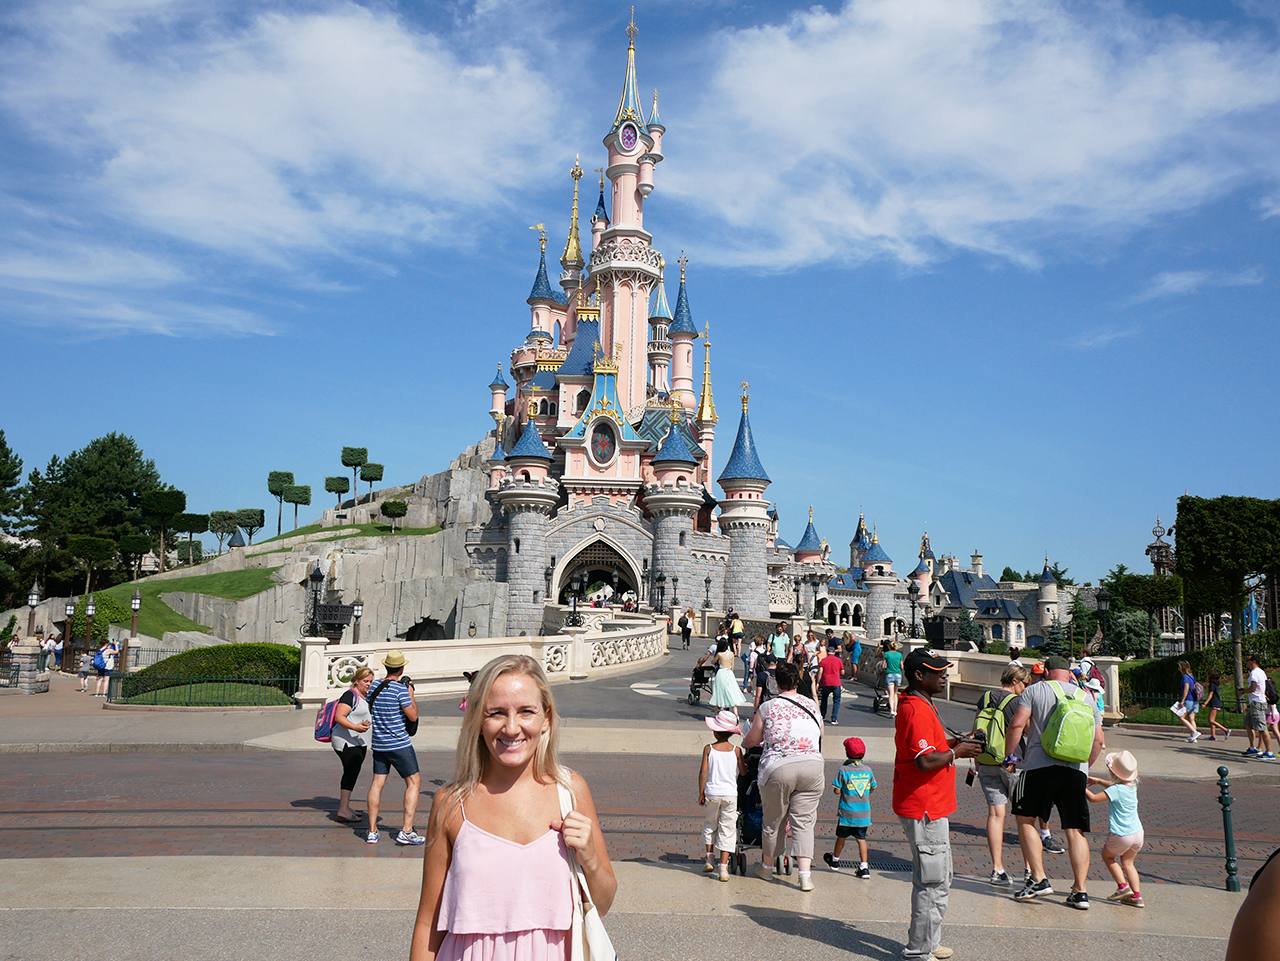 Visiting Disneyland Paris as an adult